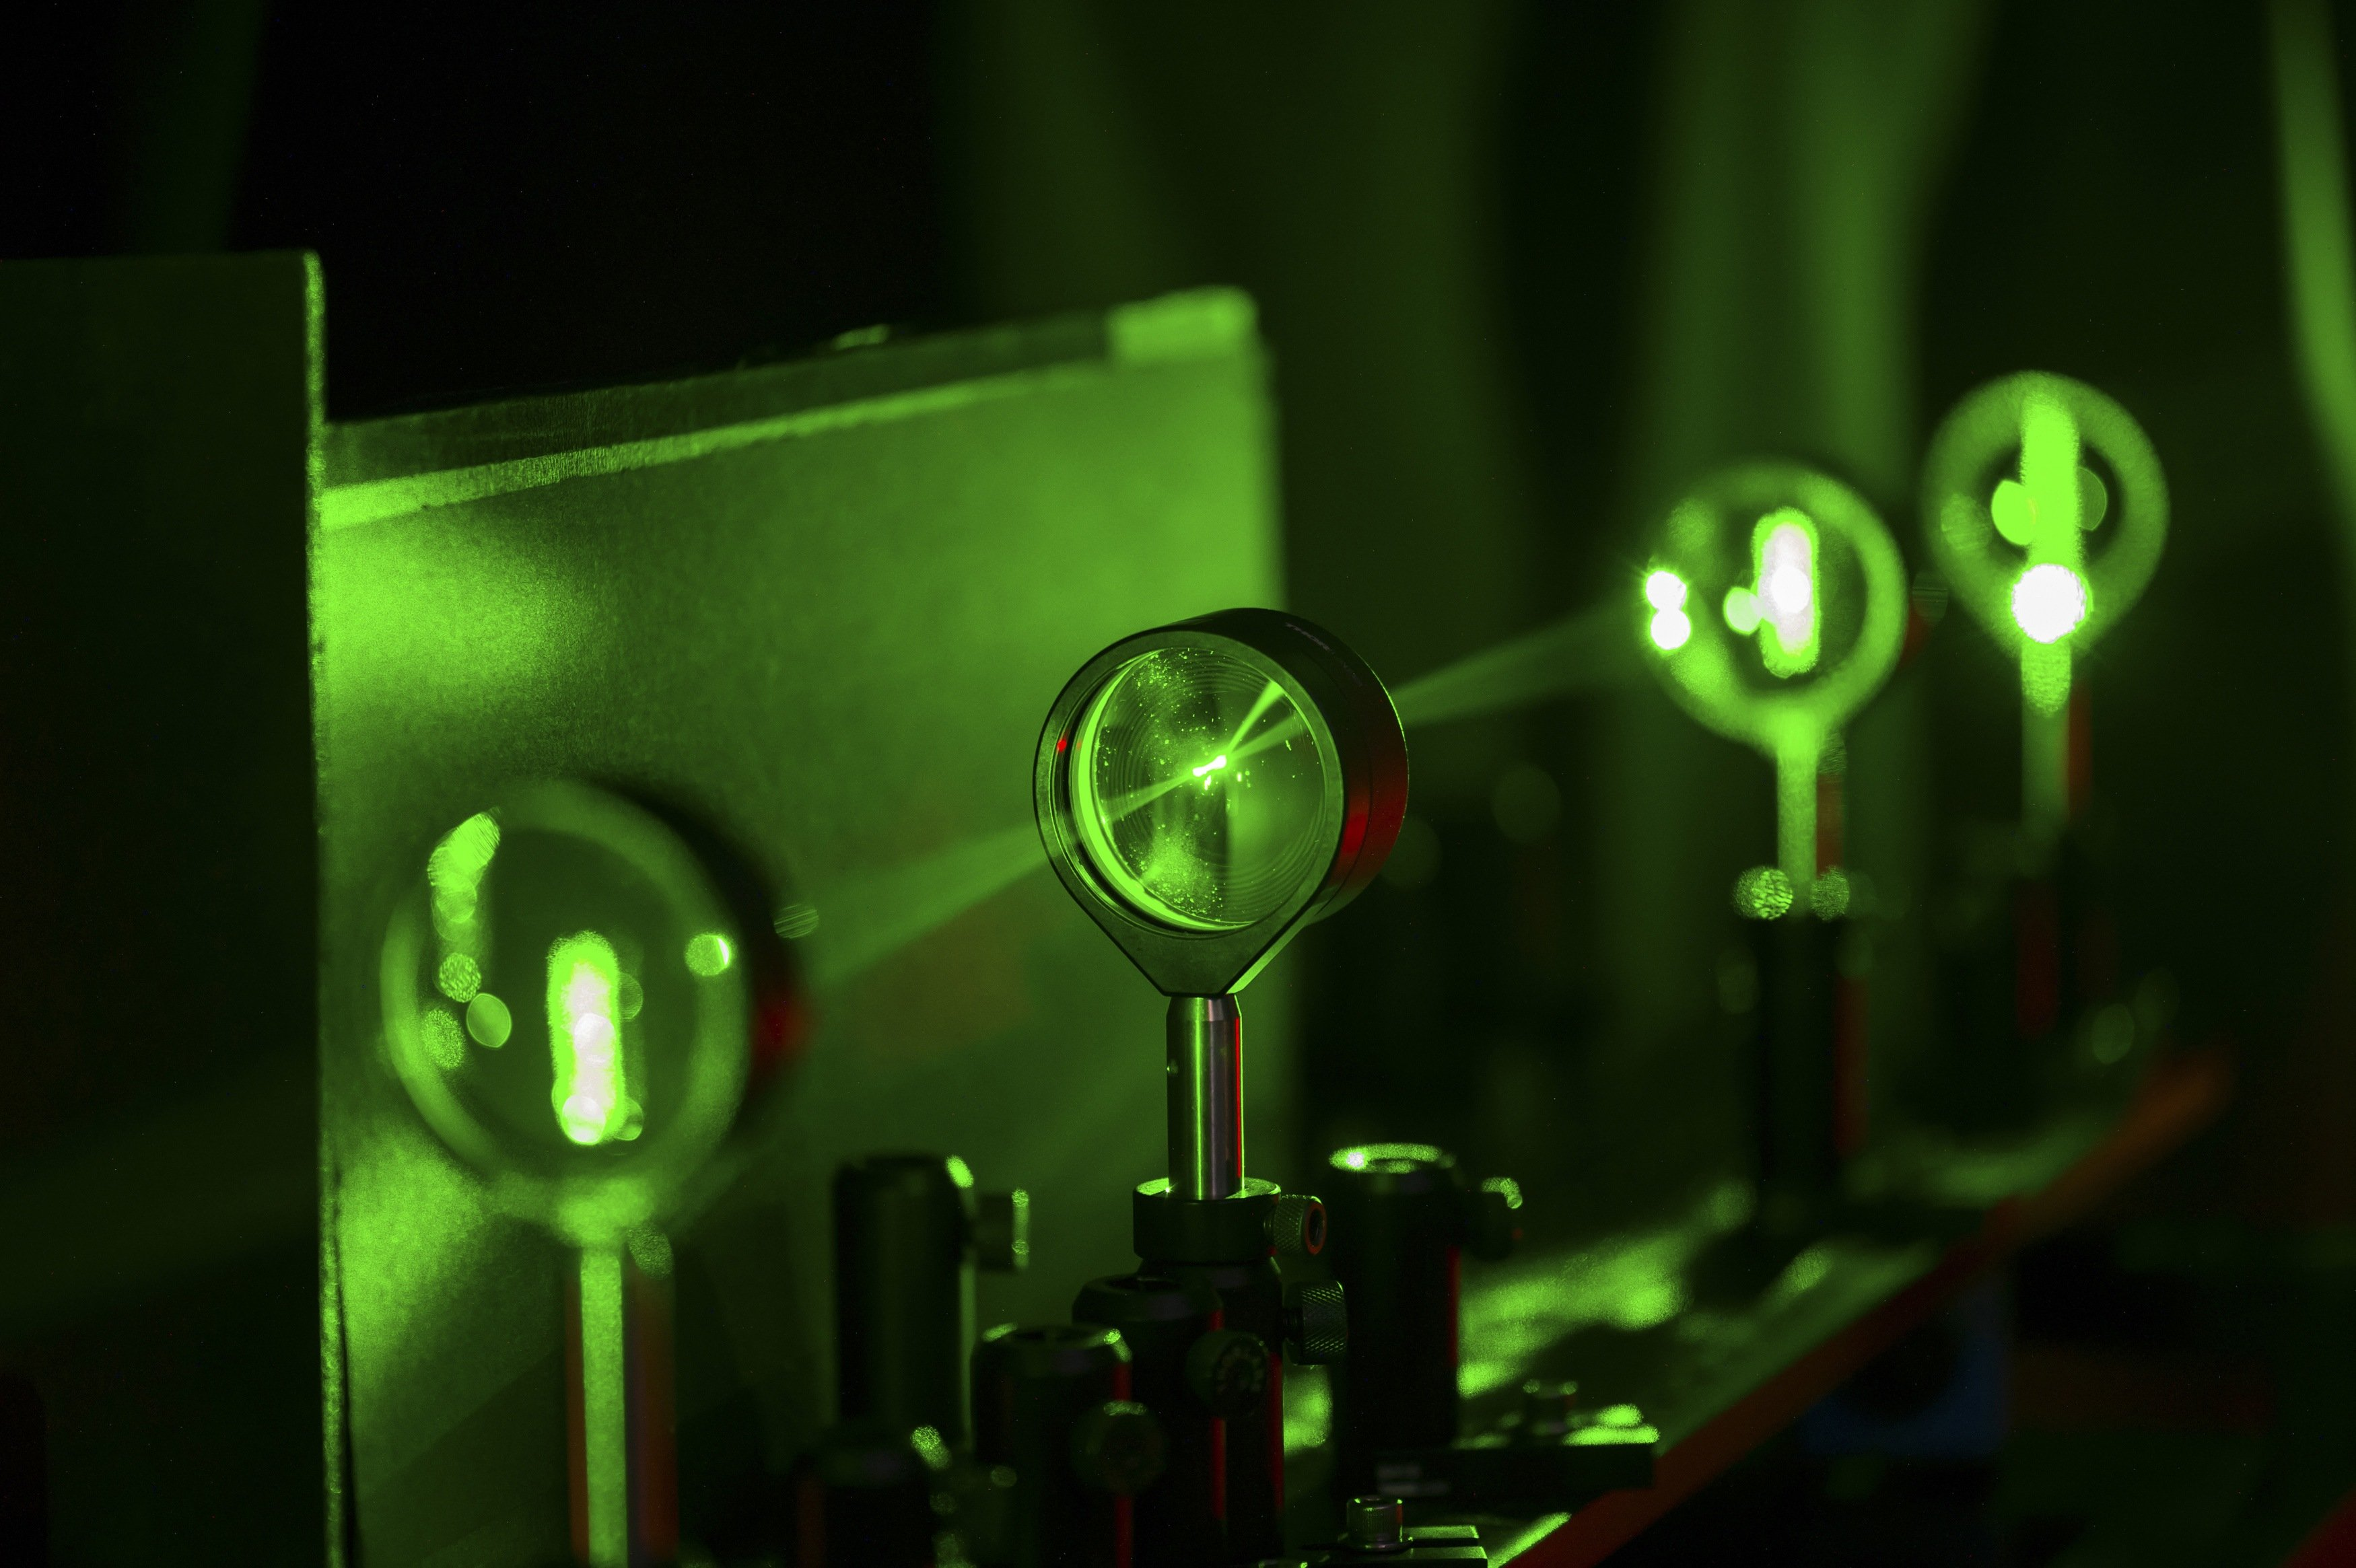 A cloaking device using four lenses developed by University of Rochester physics professor John Howell and graduate student Joseph Choi is demonstrated in Rochester, New York on Sept. 11, 2014.